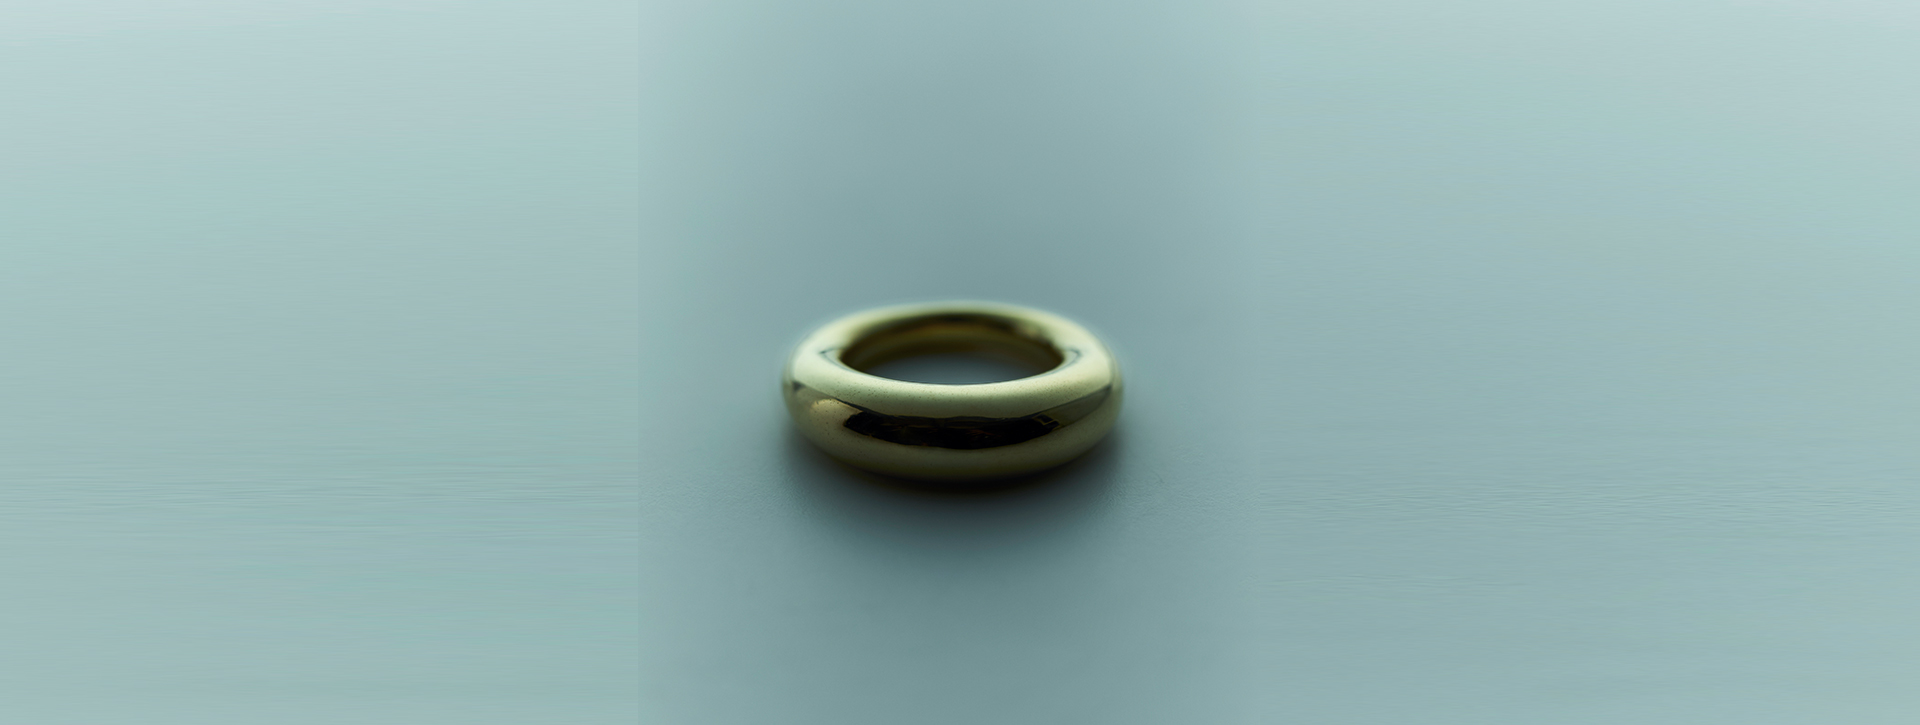 plump ring k18 gold plated